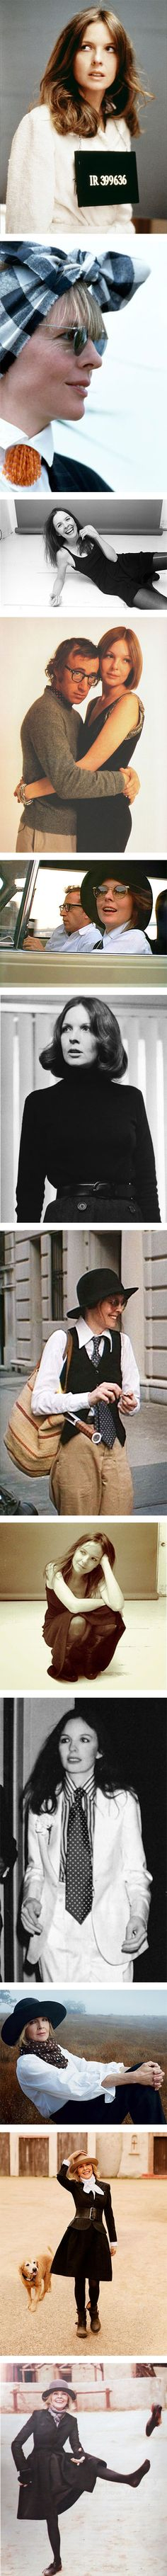 12 cool photos of Diane Keaton's best style moments via Nuji.com